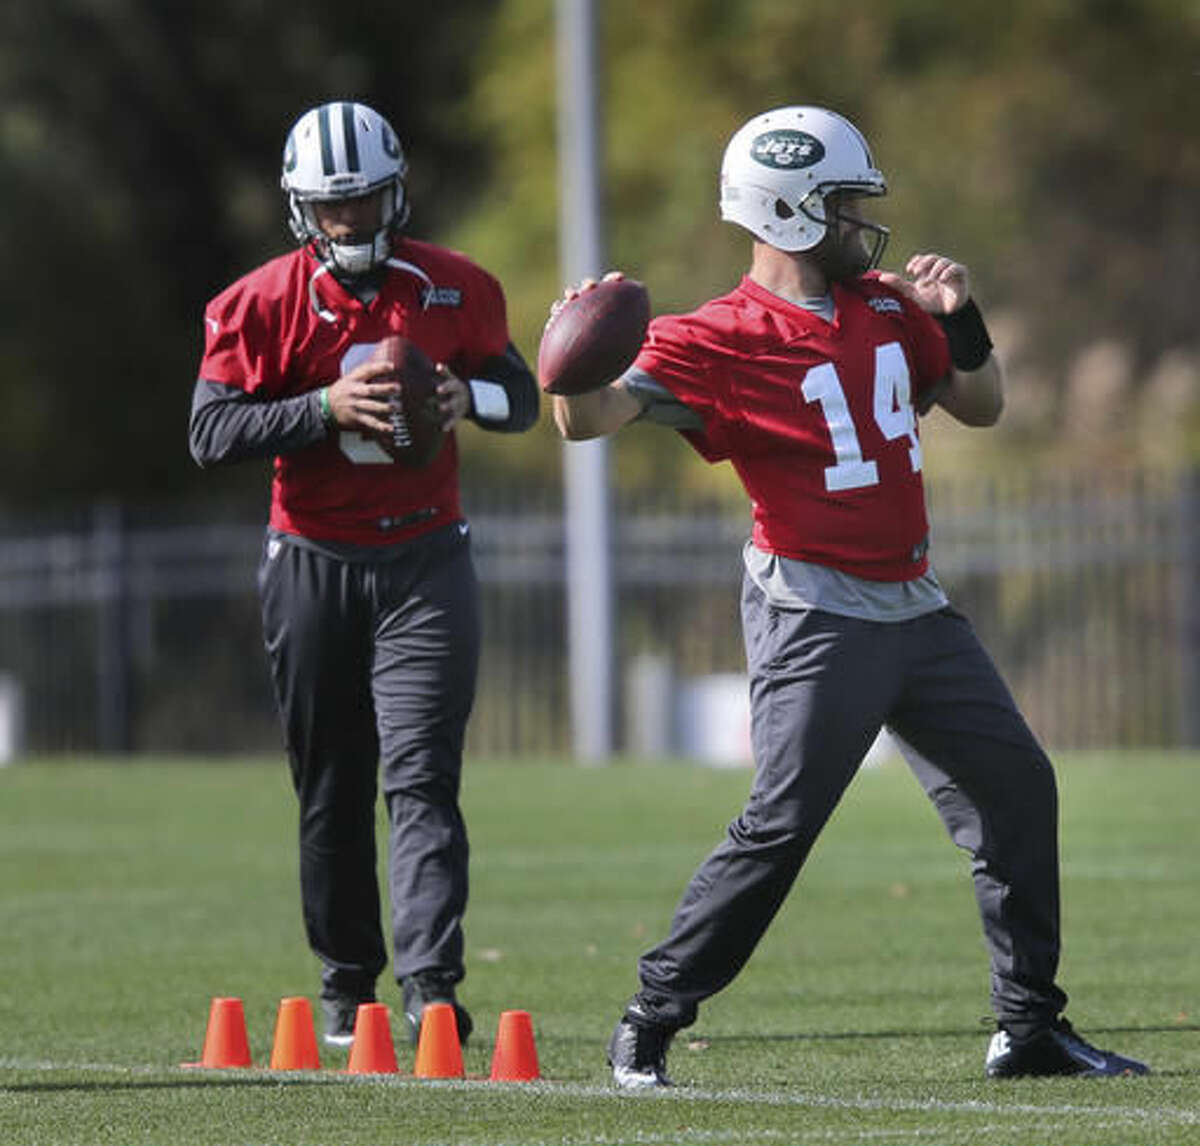 New York Jets quarterback Ryan Fitzpatrick, right, throws while Bryce Petty looks on during a NFL football practice in Florham Park, N.J., Wednesday, Oct. 26, 2016. (AP Photo/Seth Wenig)